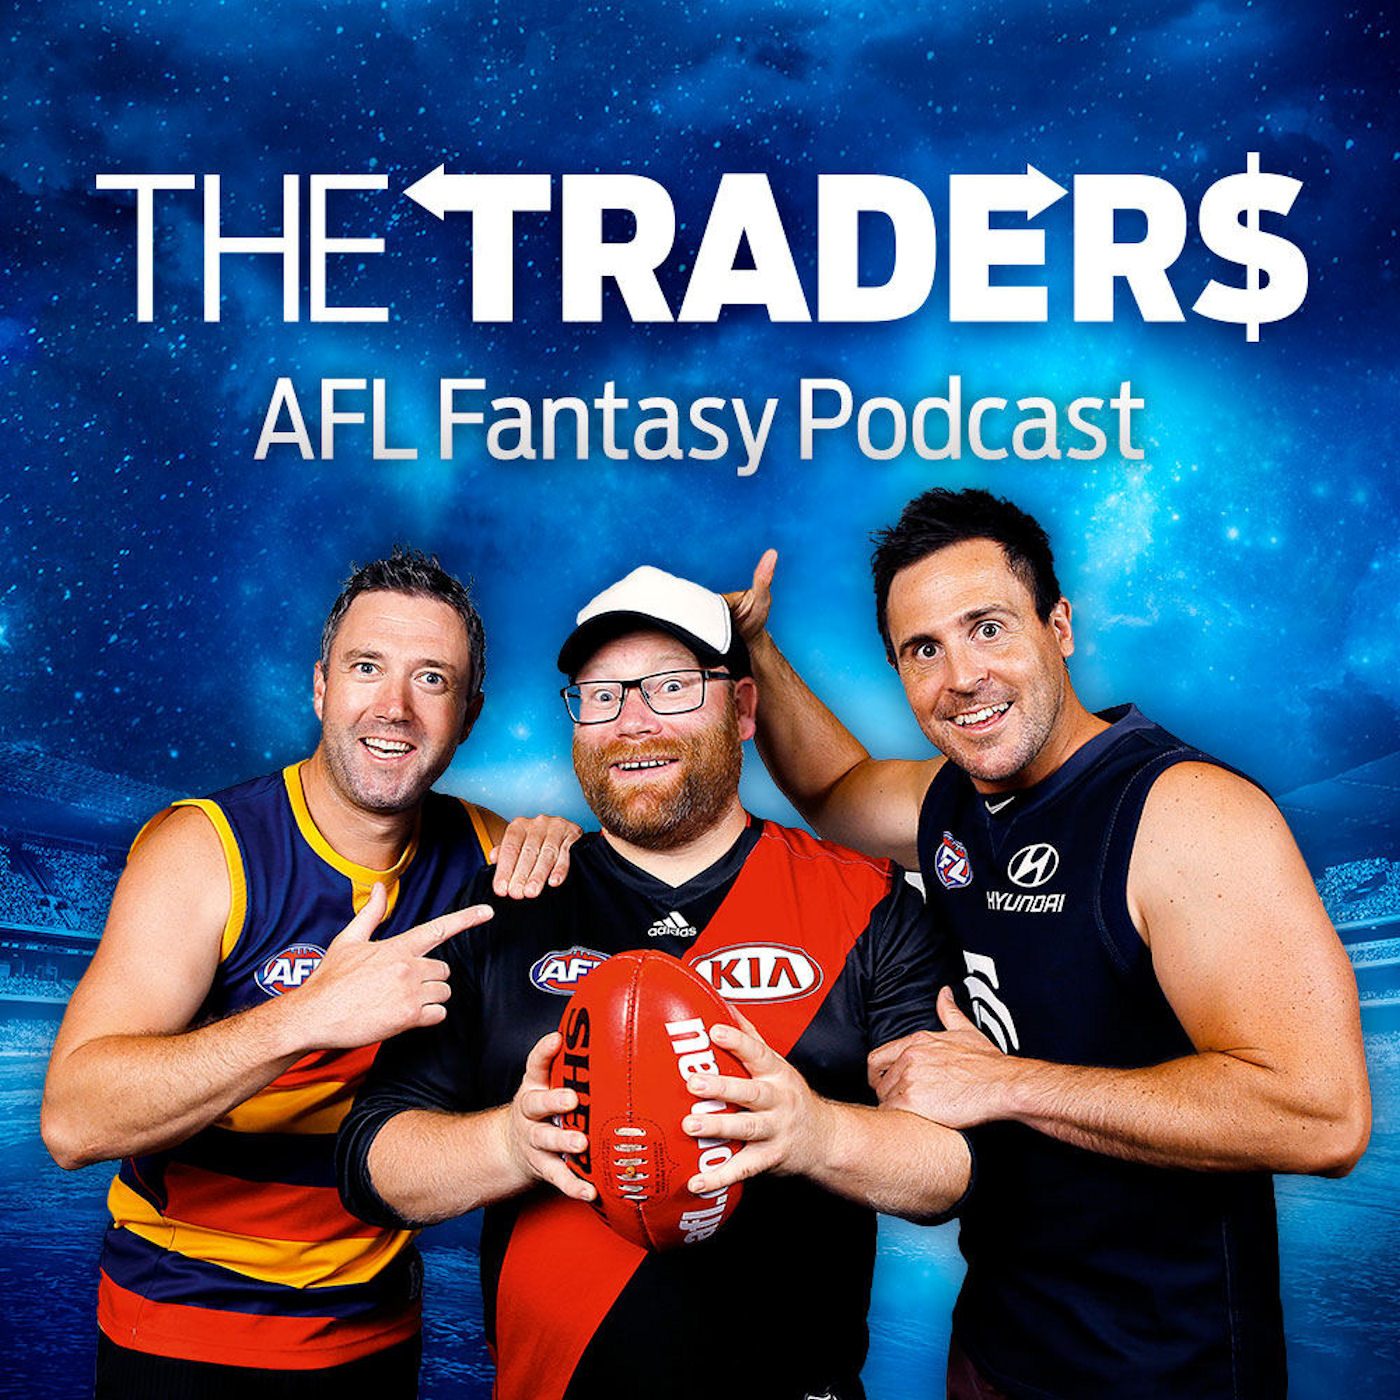 The Traders' AFL Fantasy Podcast